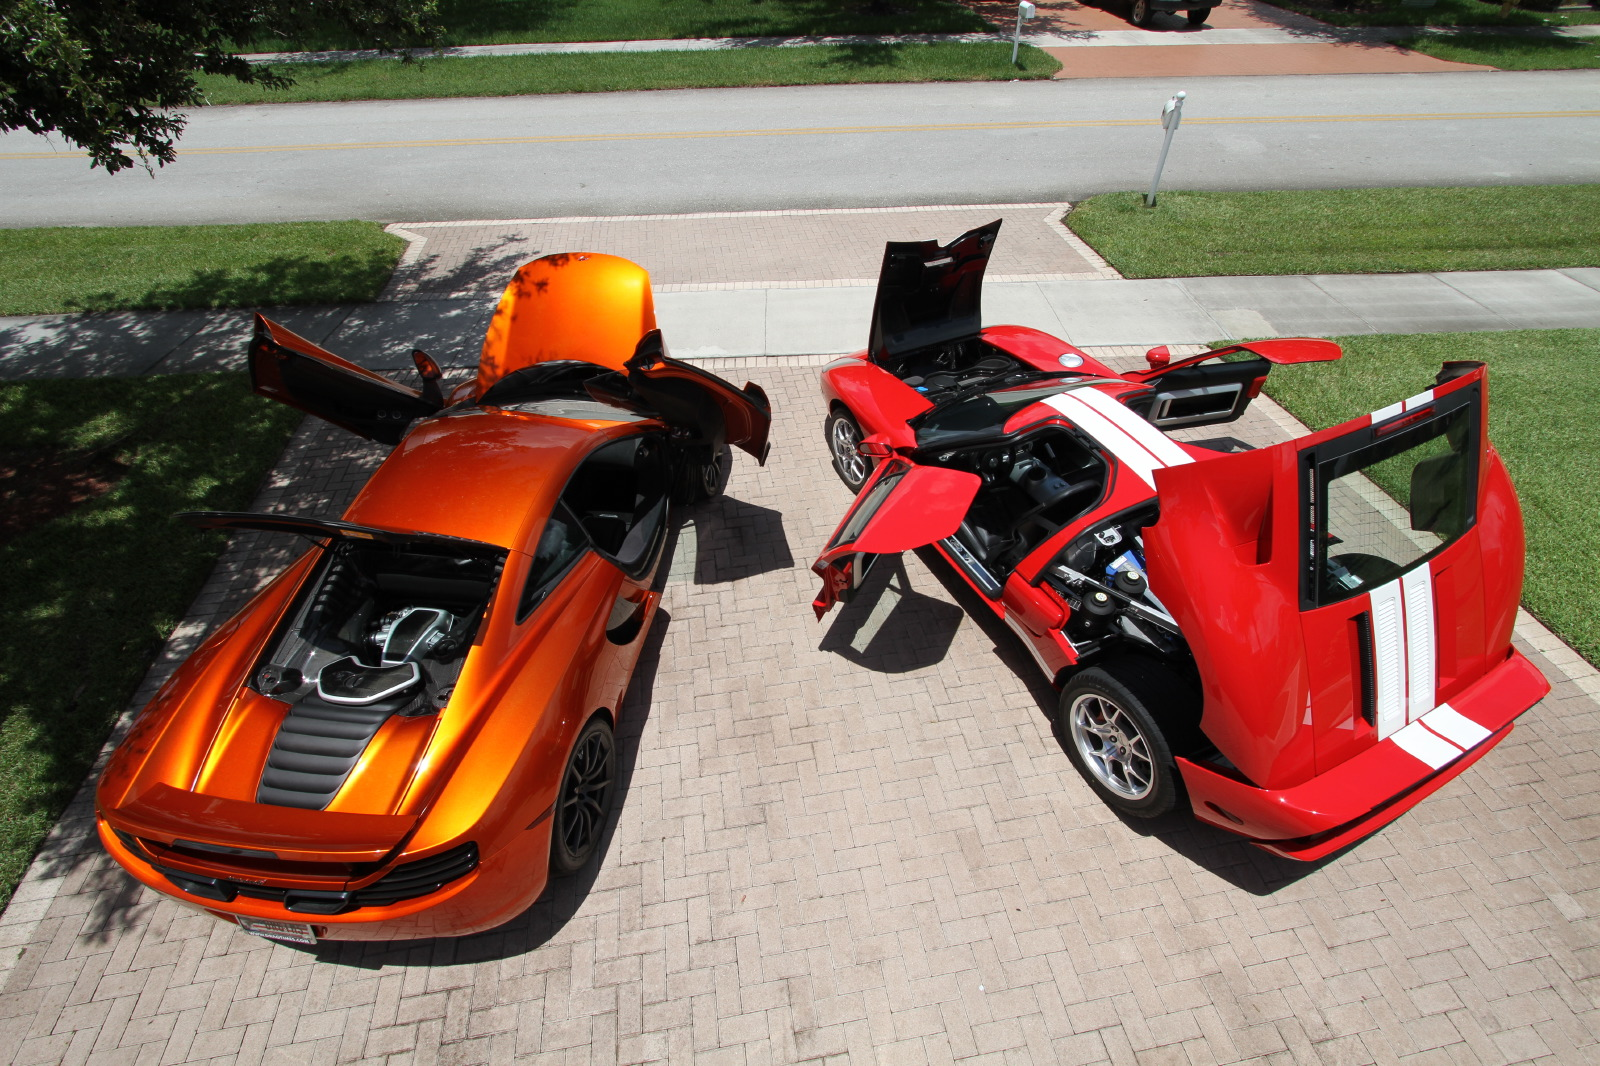 mclaren-mp4-12c-volcano-orange-vs-ford-gt-red-white-019